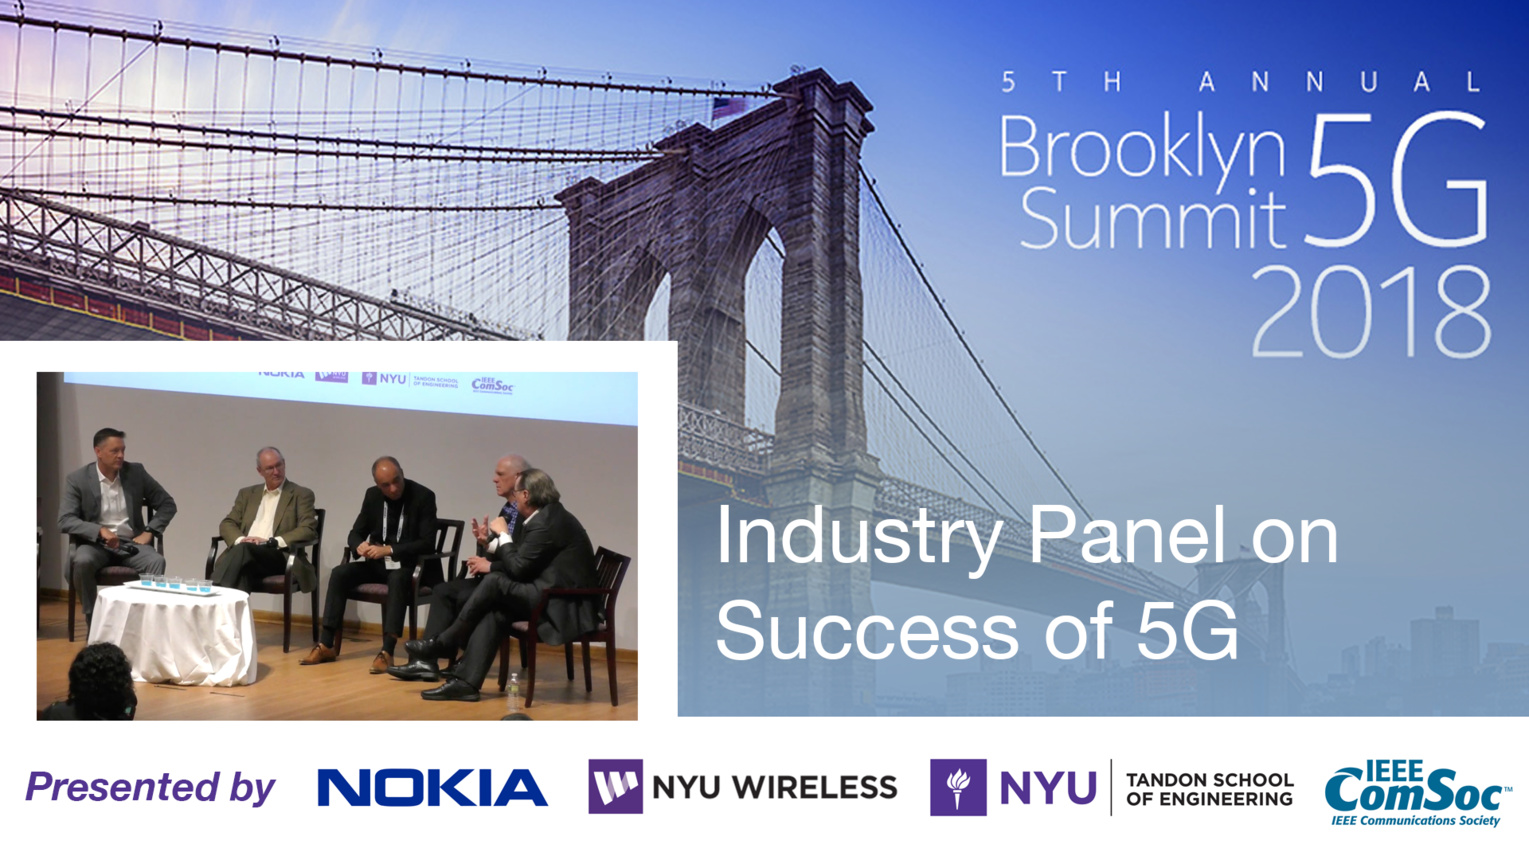 Industry Panel on Success of 5G - Brooklyn 5G Summit 2018